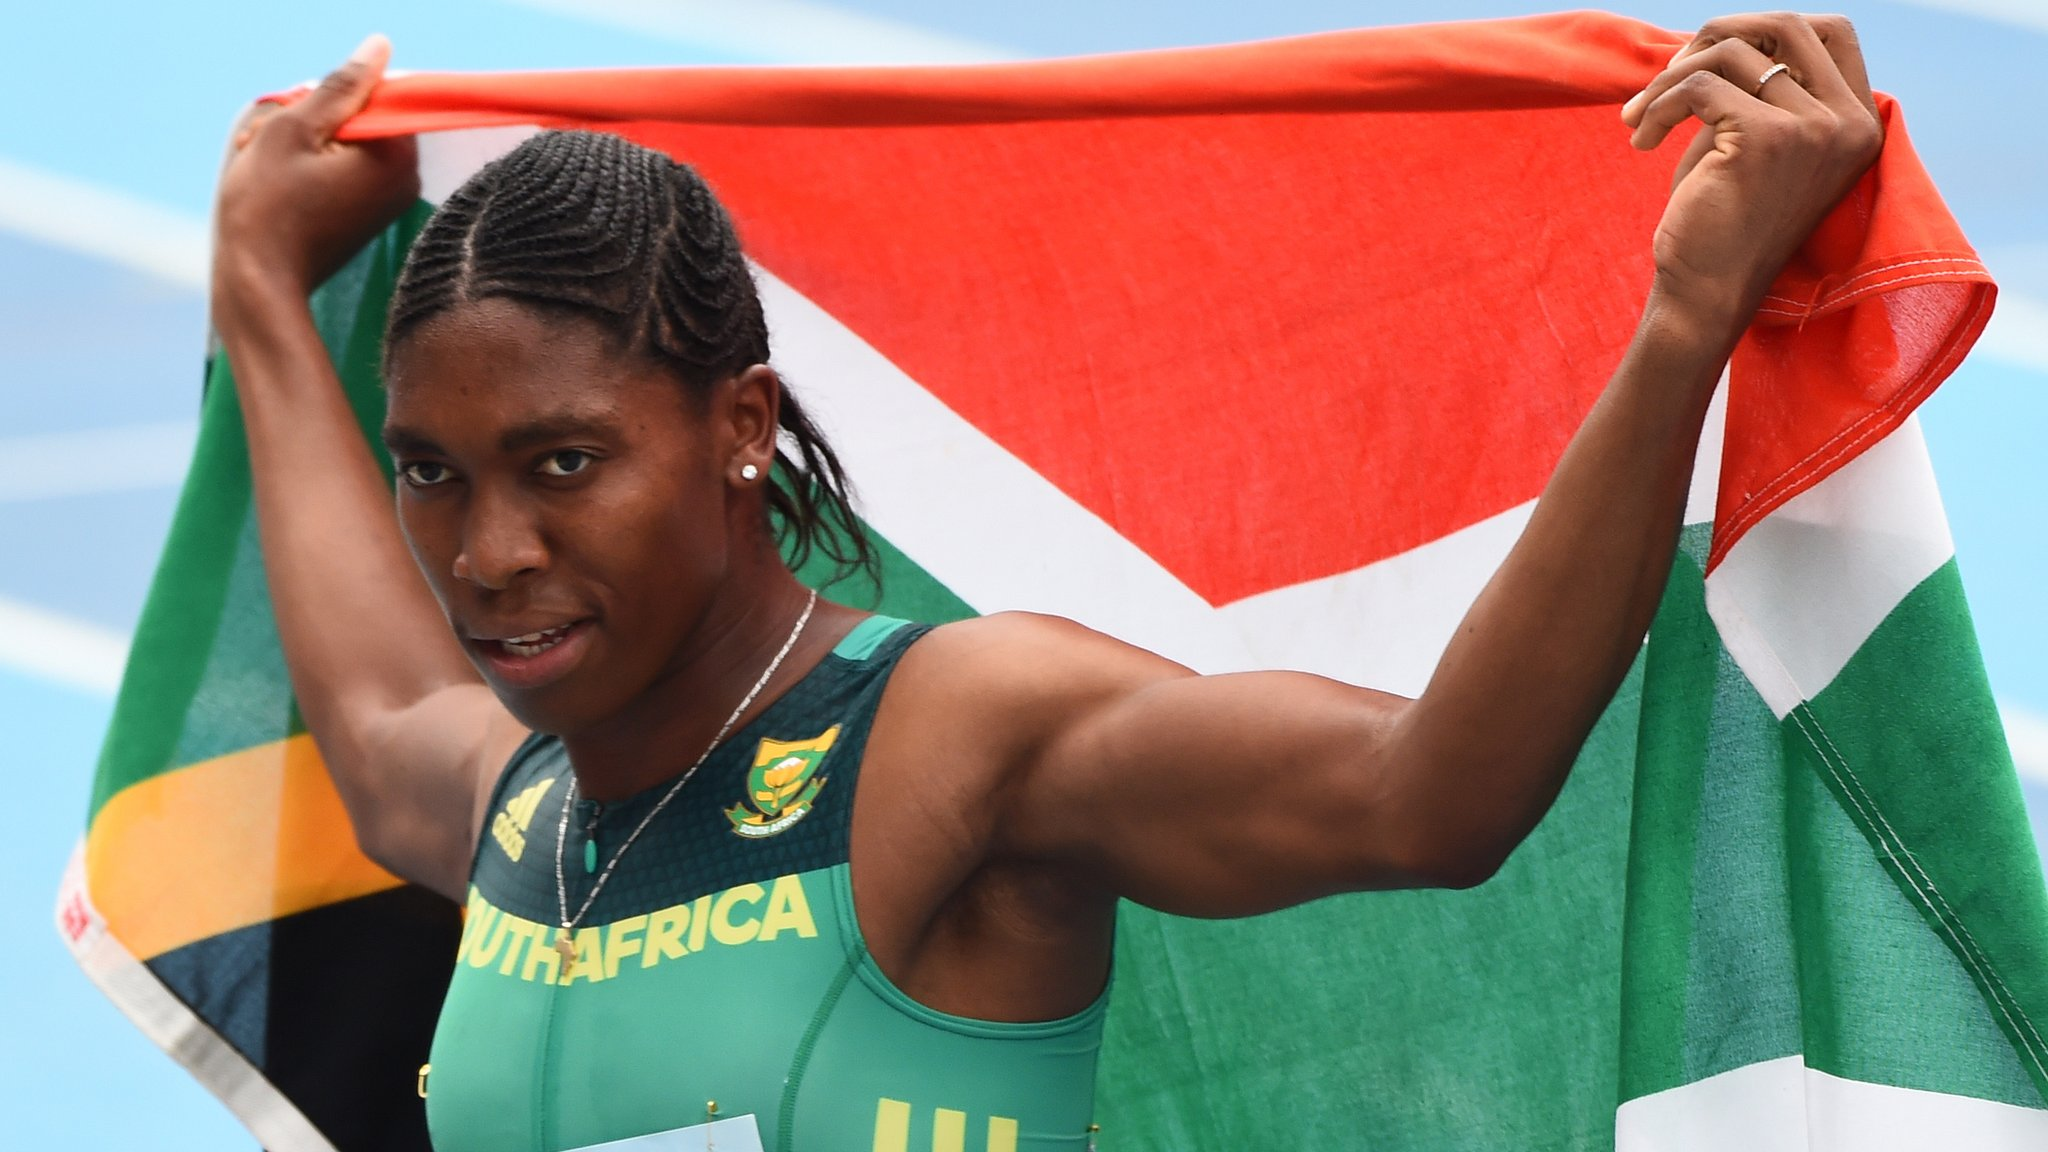 Caster Semenya to hear verdict on appeal against IAAF testosterone rule on Wednesday